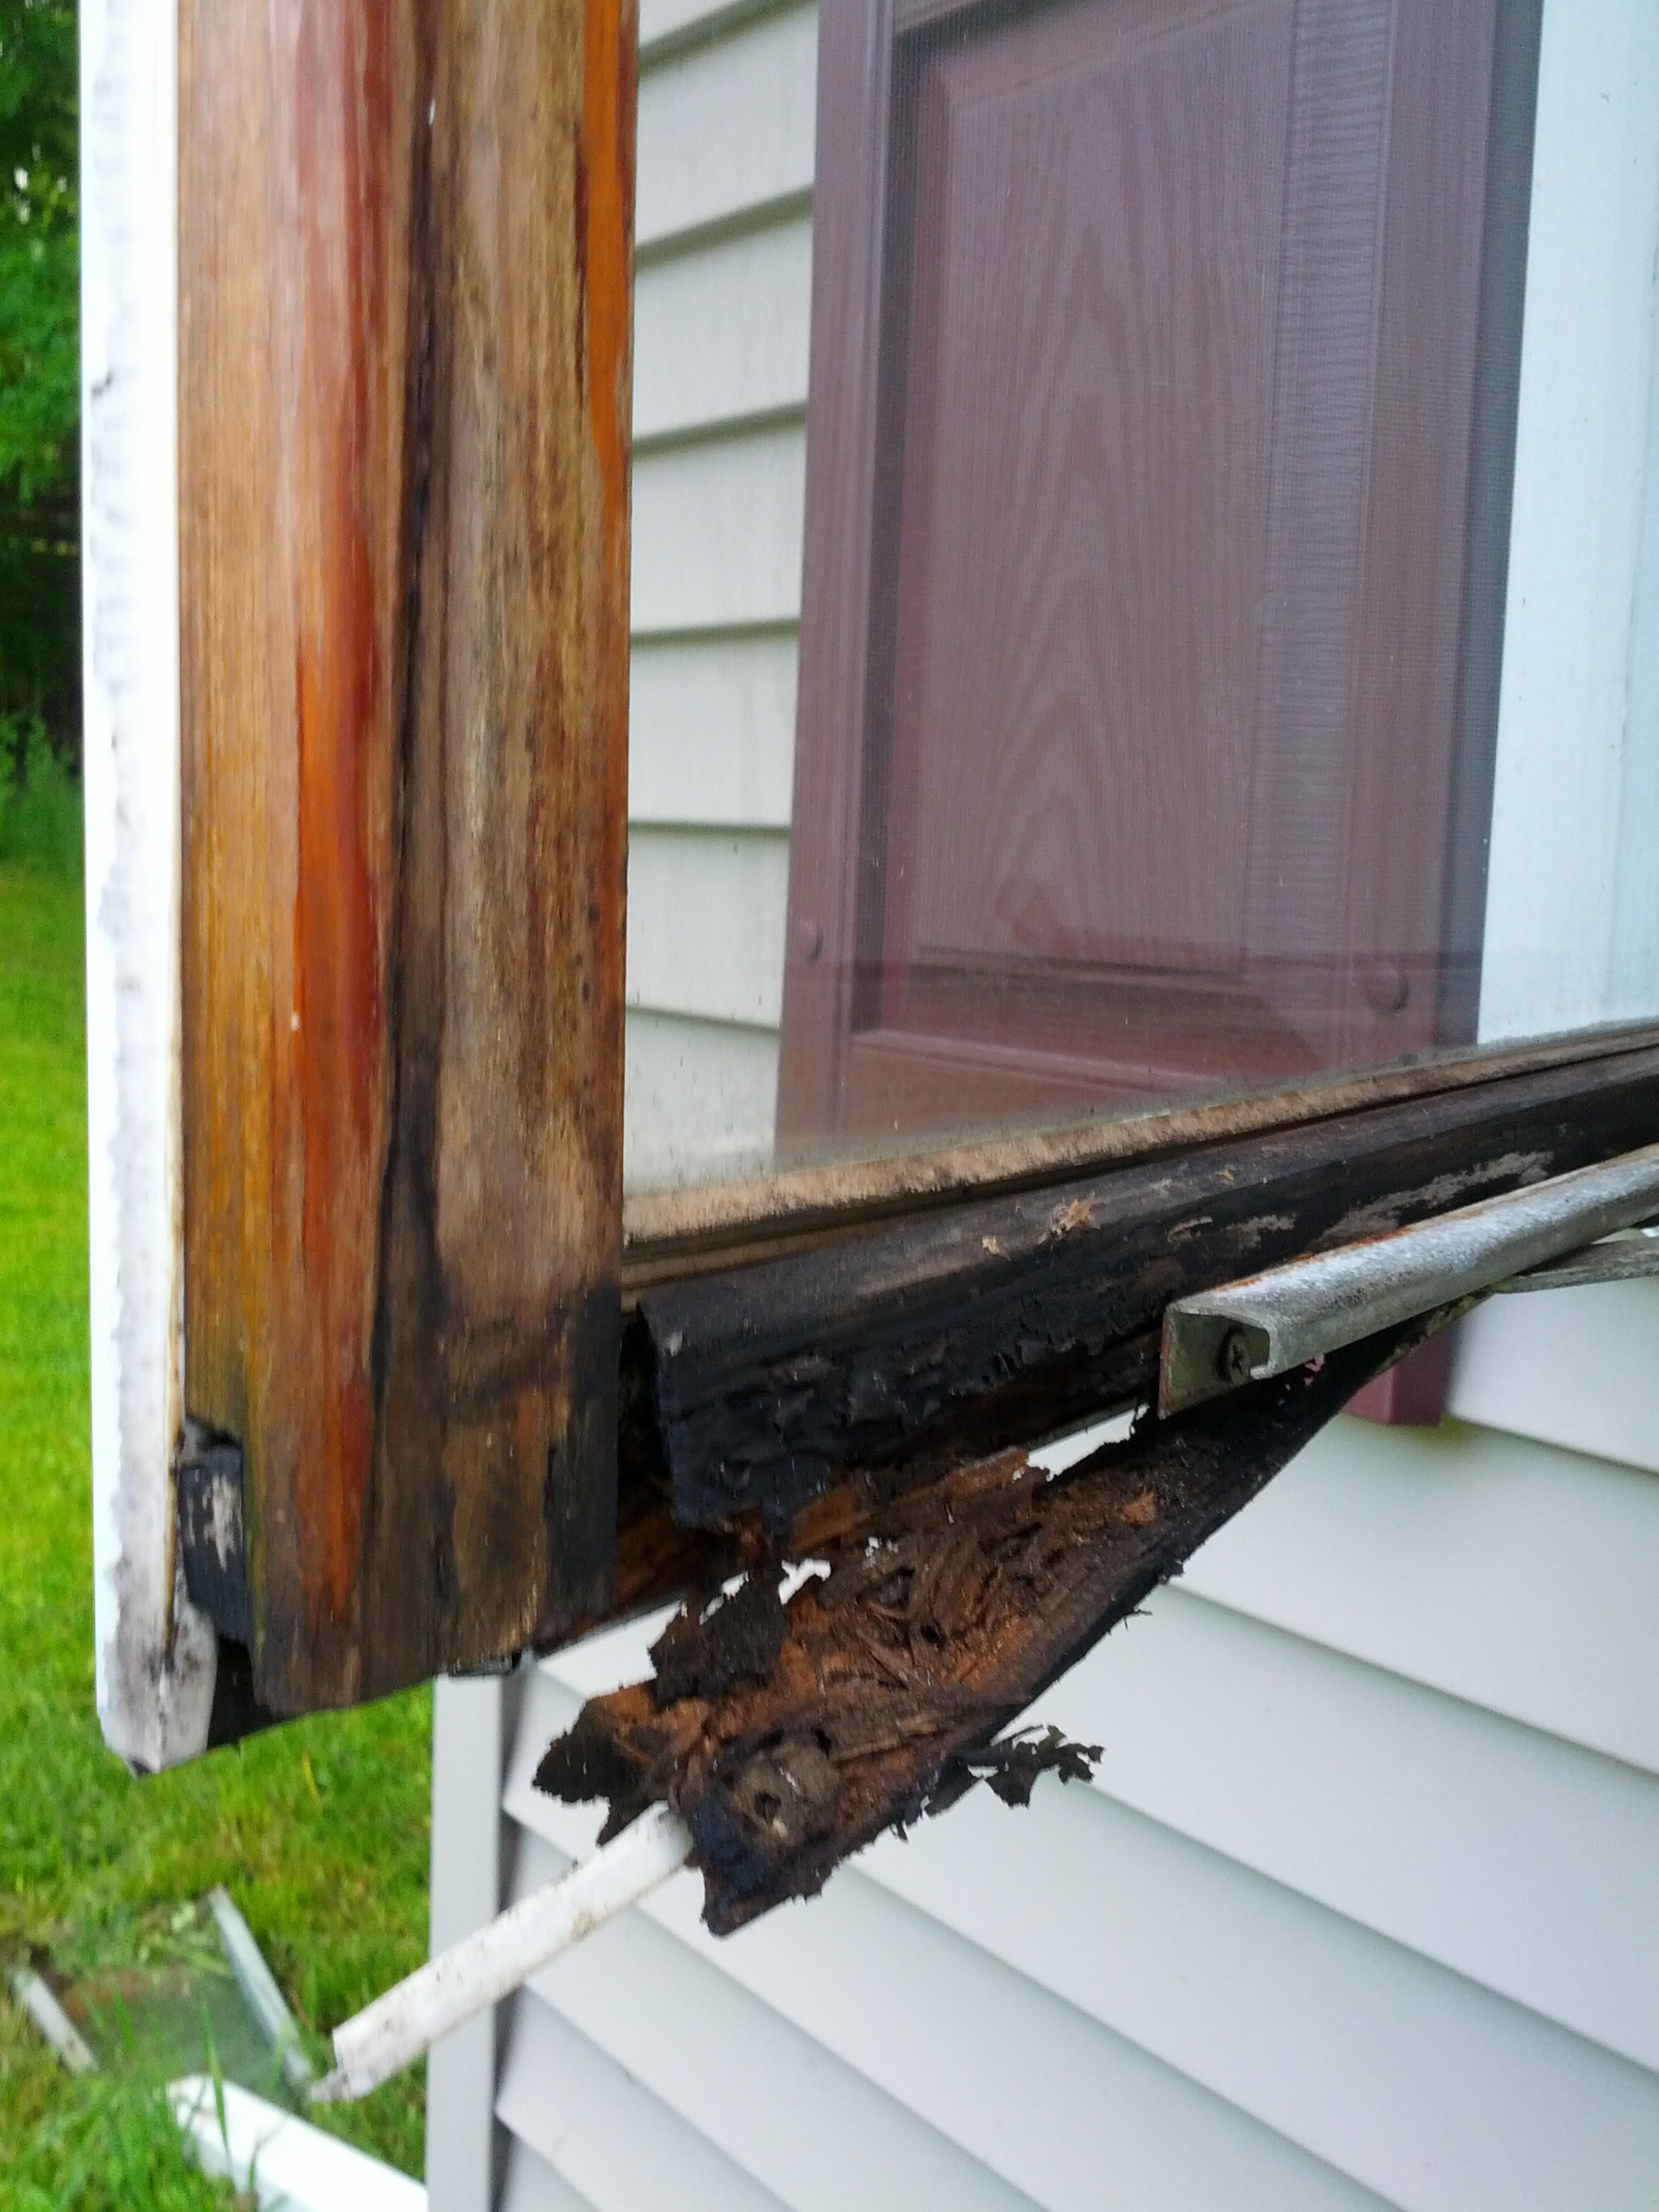 Casement Window Bottom Of Frame Rotted Repair Or Replace